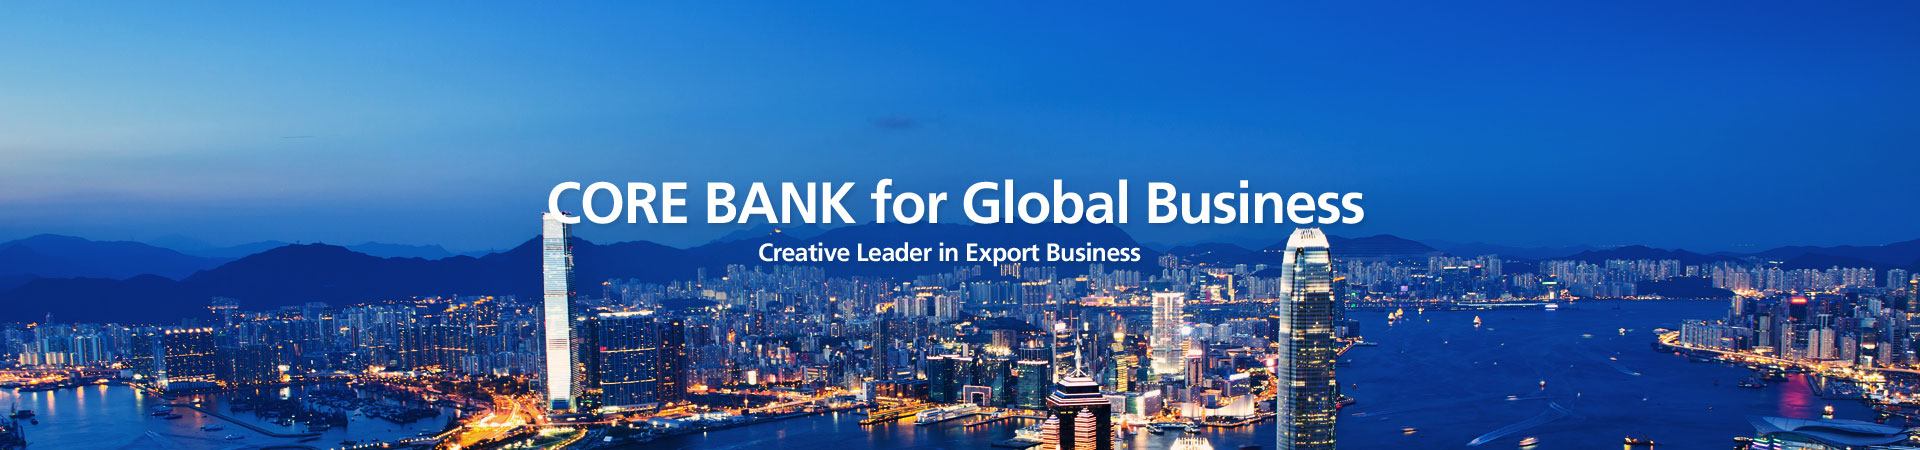 CORE BANK for Global Business - Creative Leader in Export Business